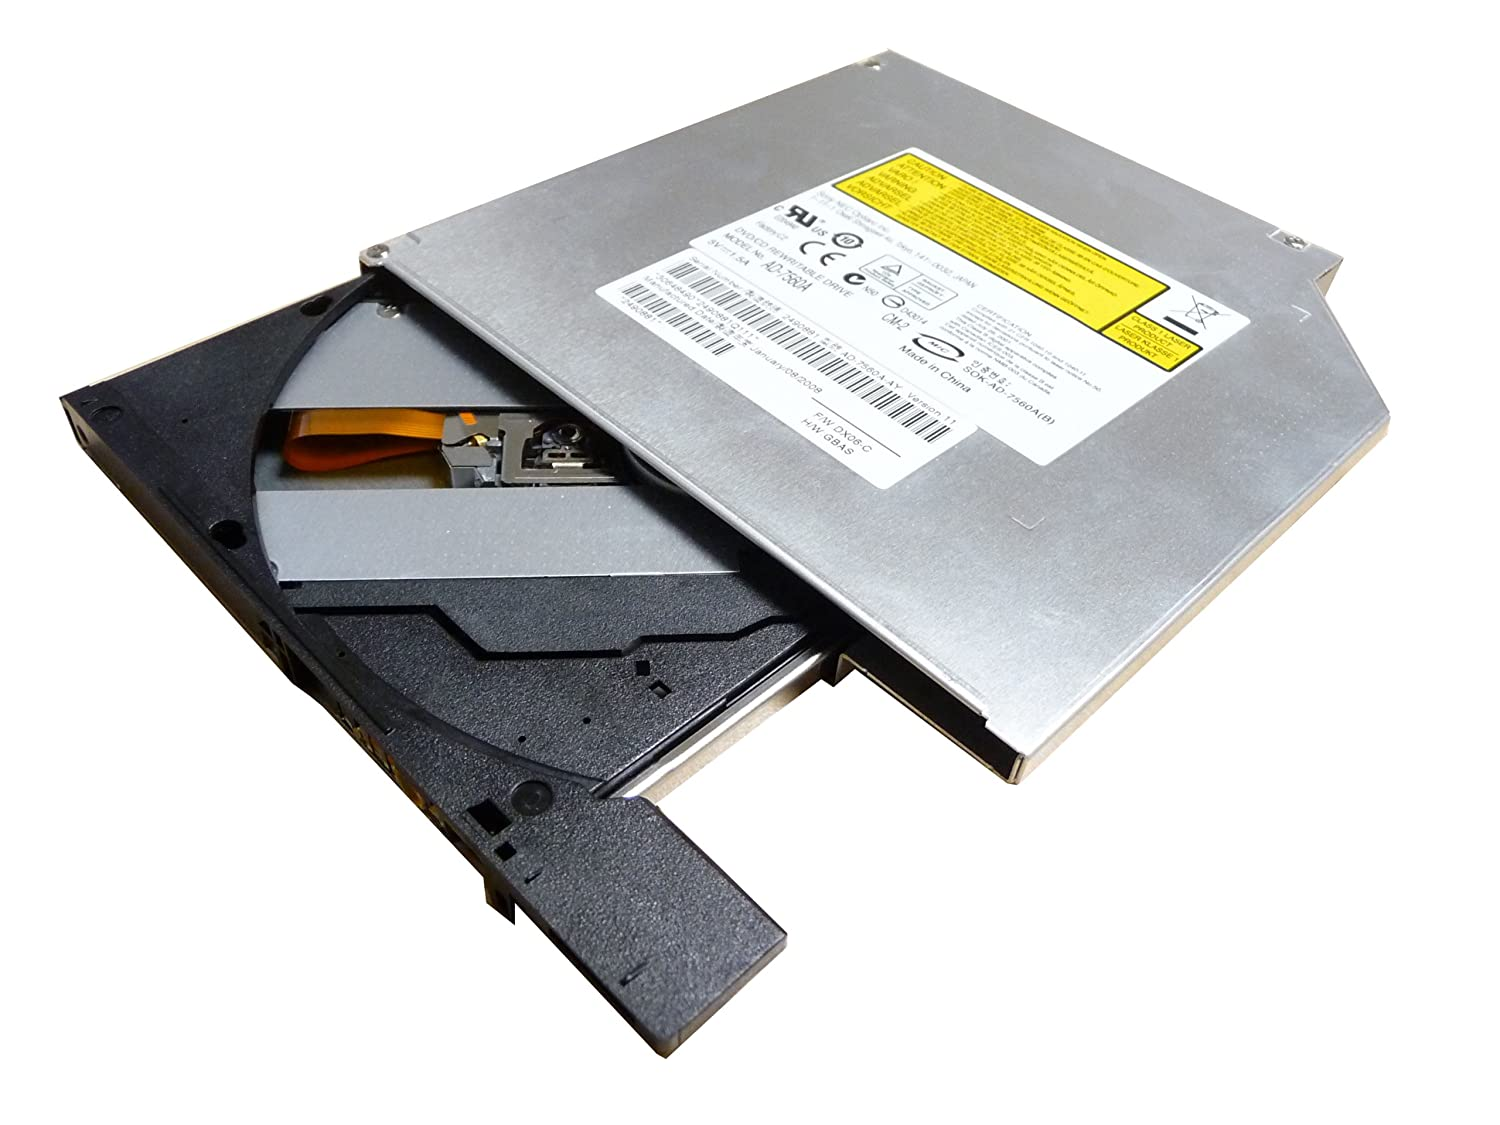 OPTIARC DVD RW AD 7560S DRIVER DOWNLOAD